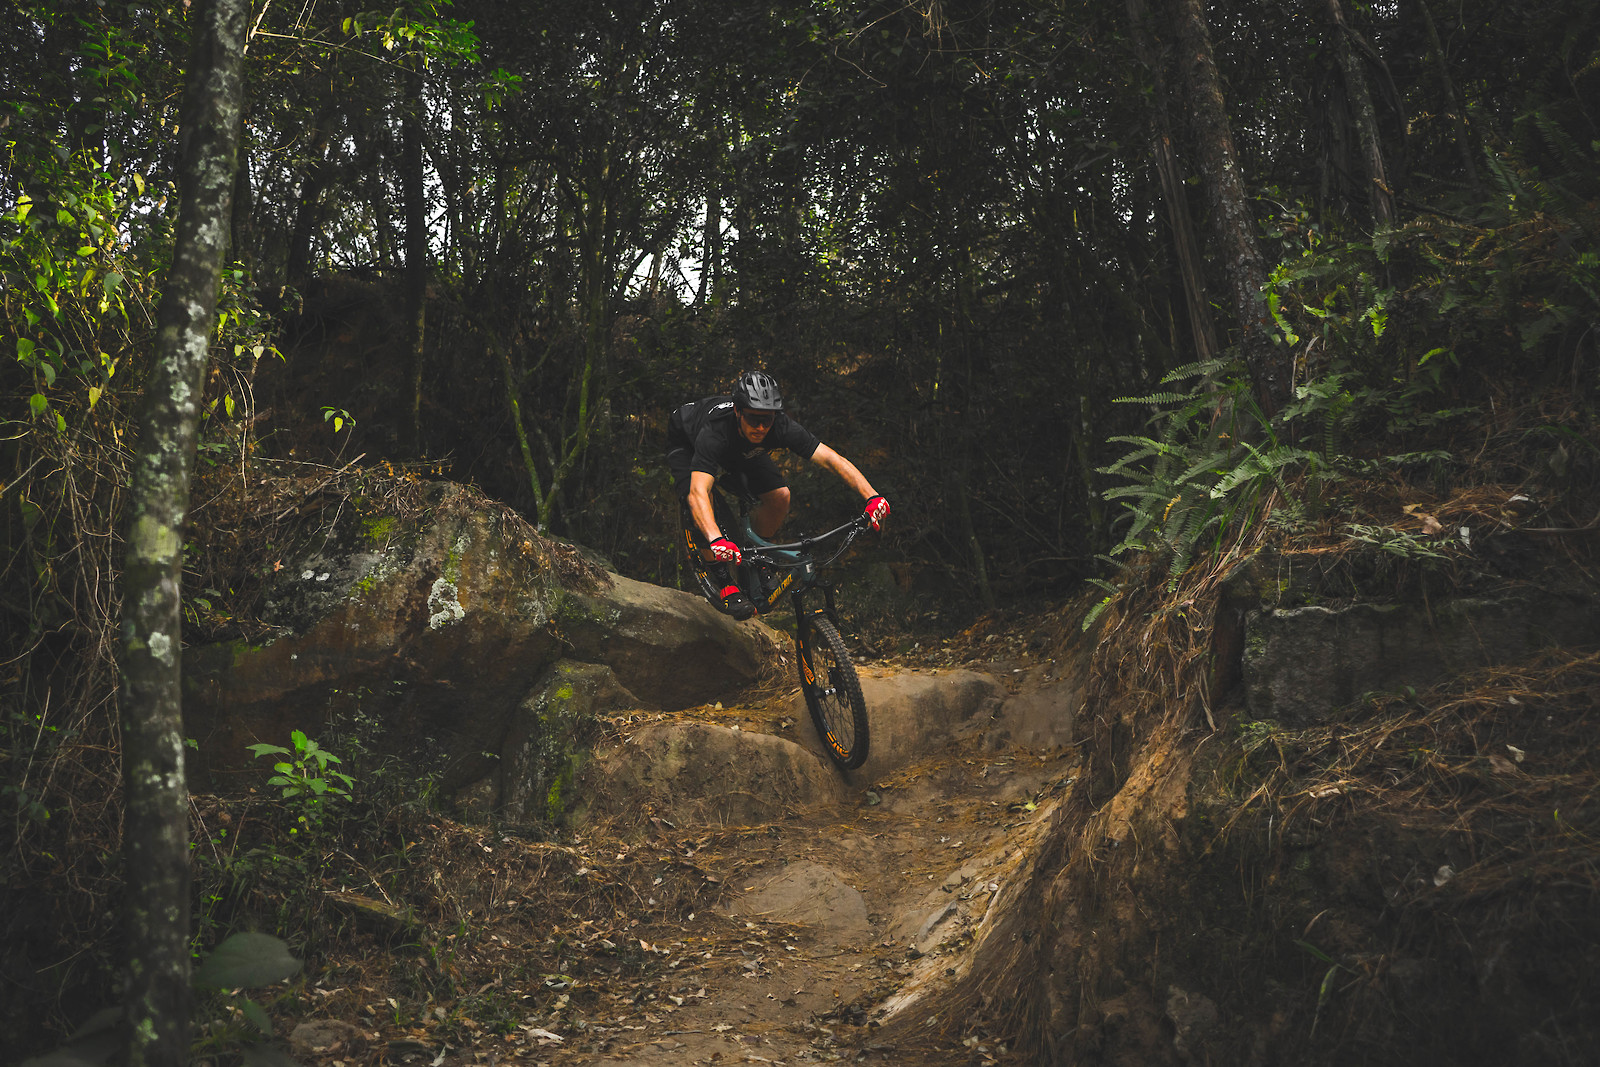 Jungle Drops - Its.Peteee - Mountain Biking Pictures - Vital MTB